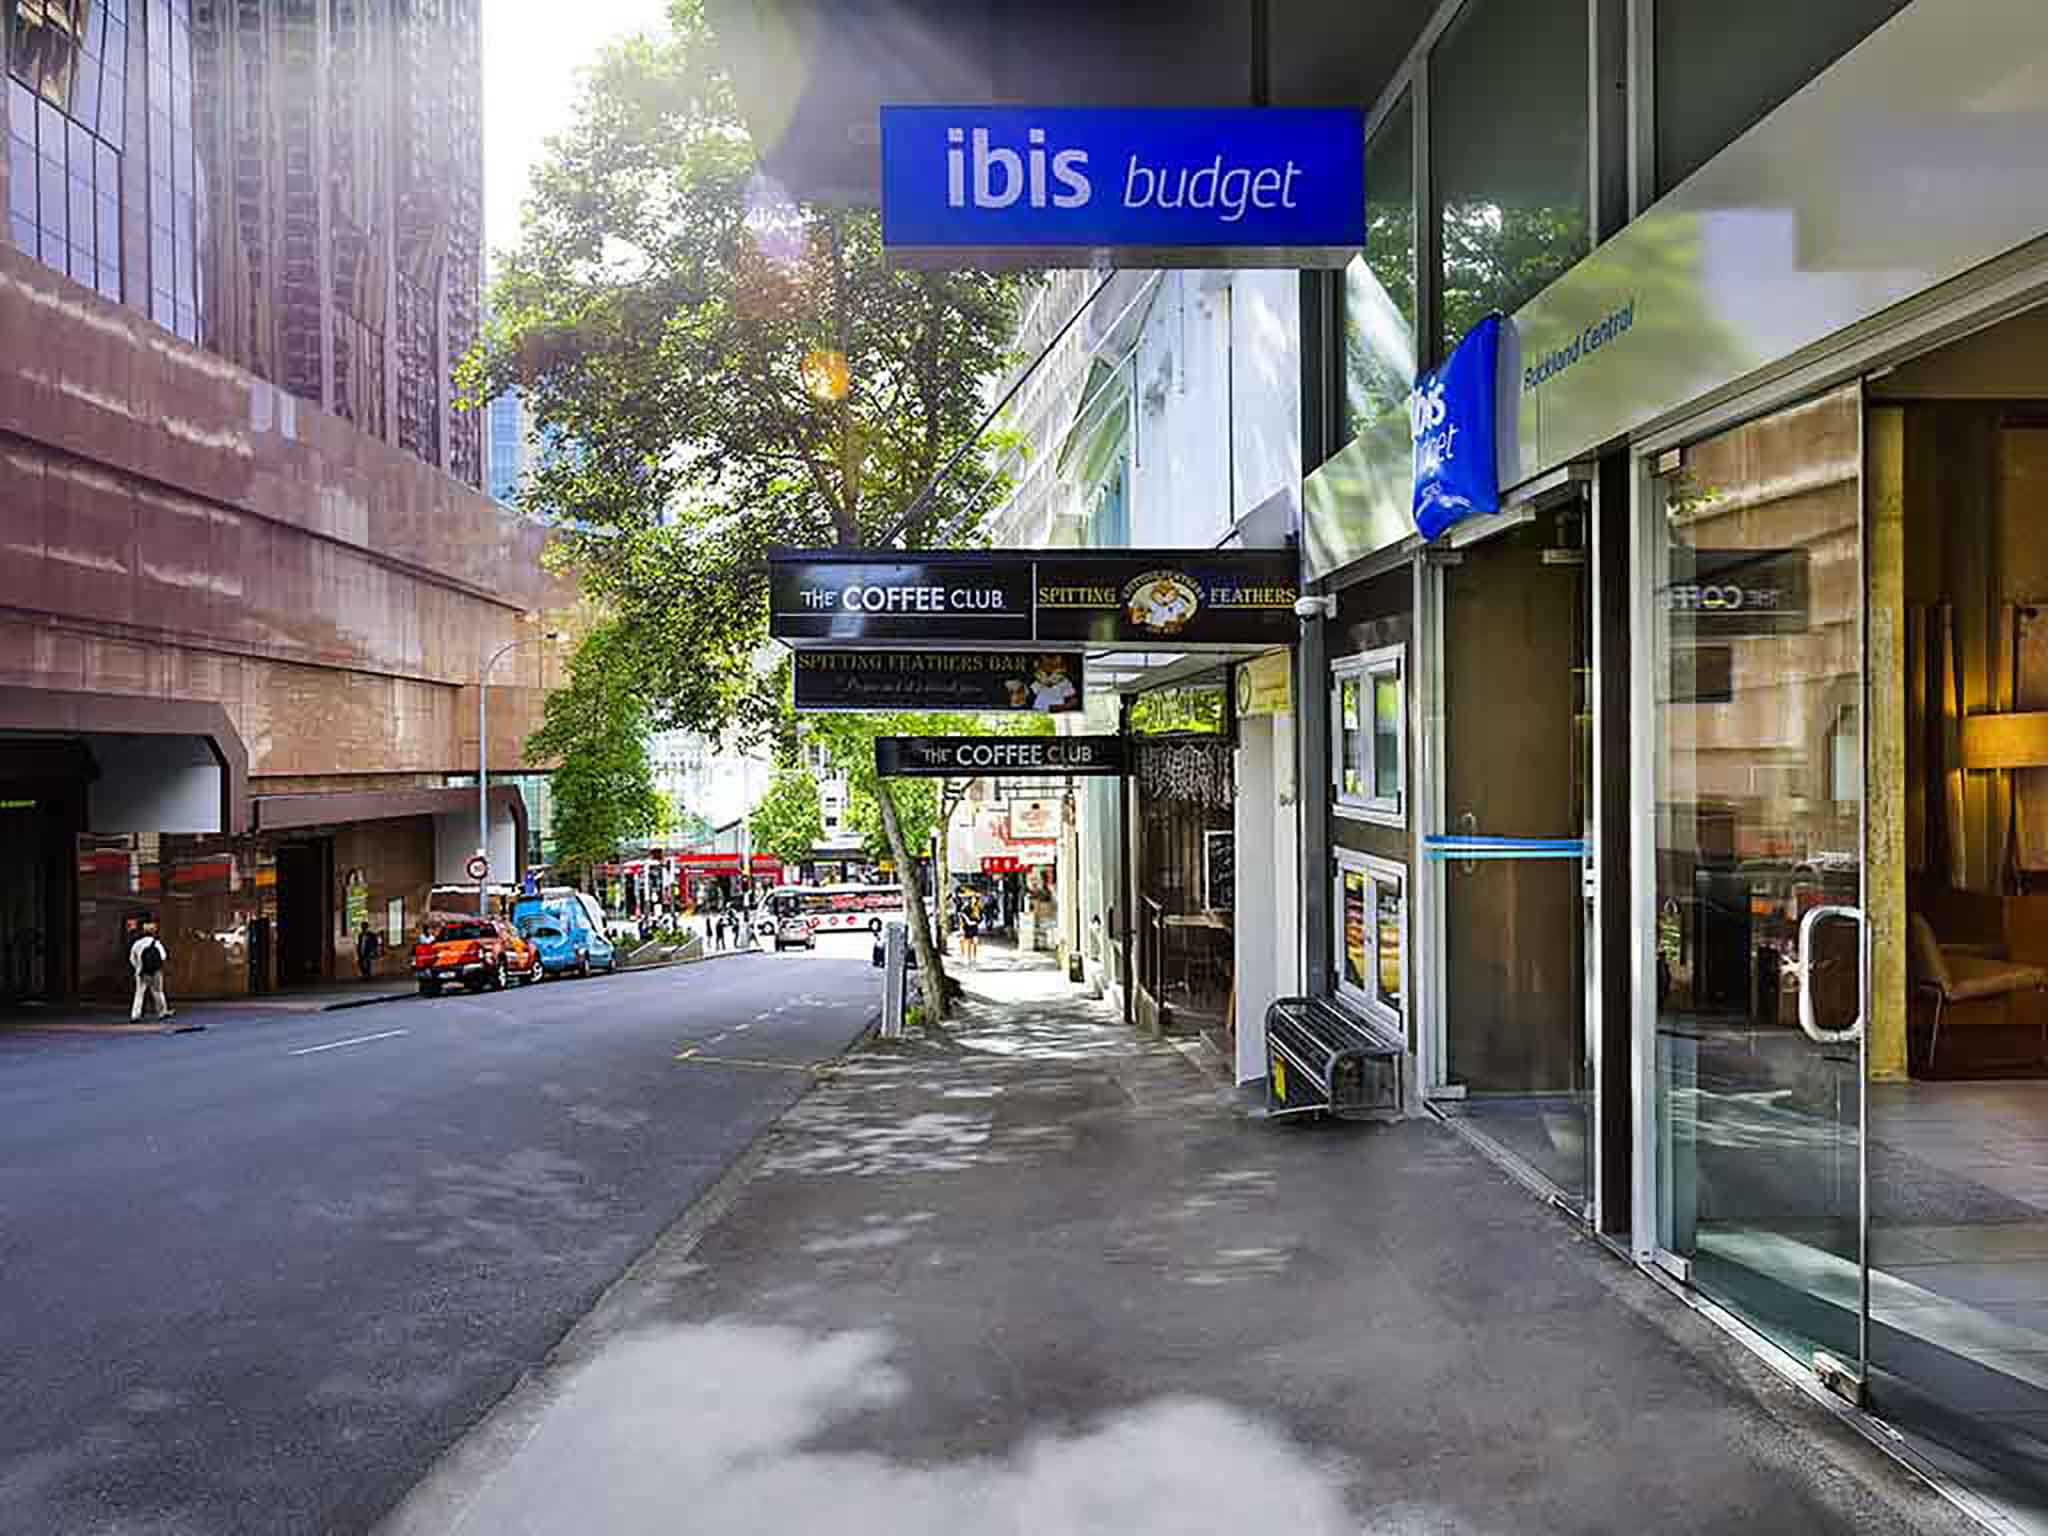 Ibis Budget Auckland Central - Hotel Accommodaton In Auckland Cbd